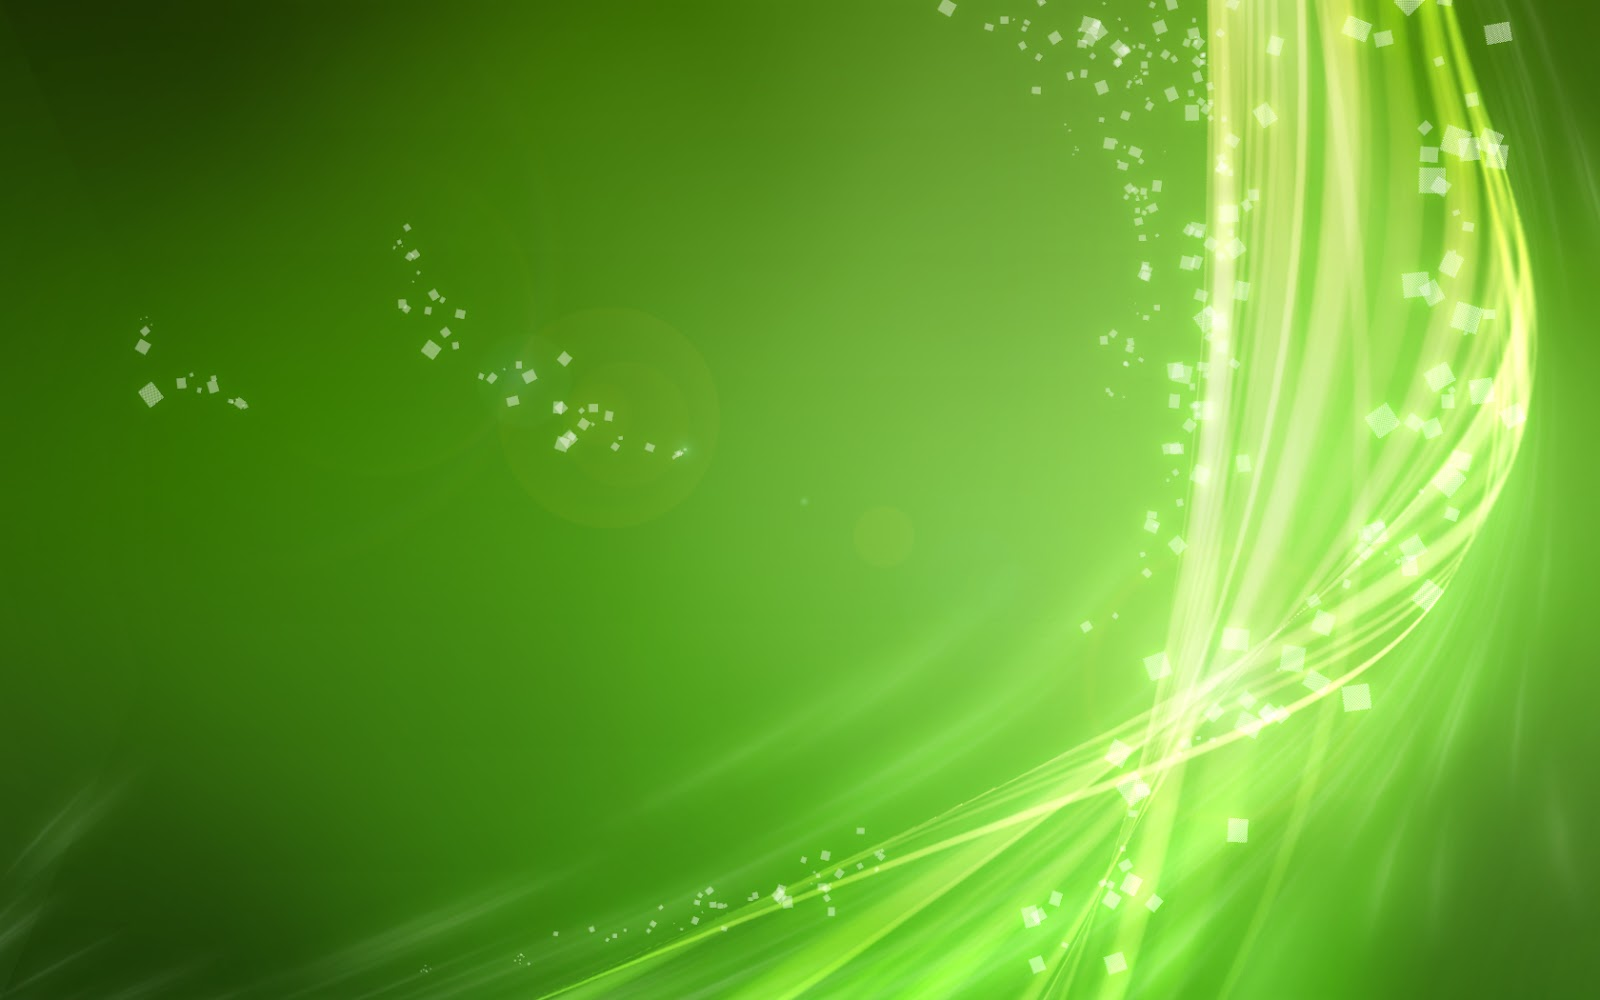 Available Wallpaper Green Abstract Wallpapers